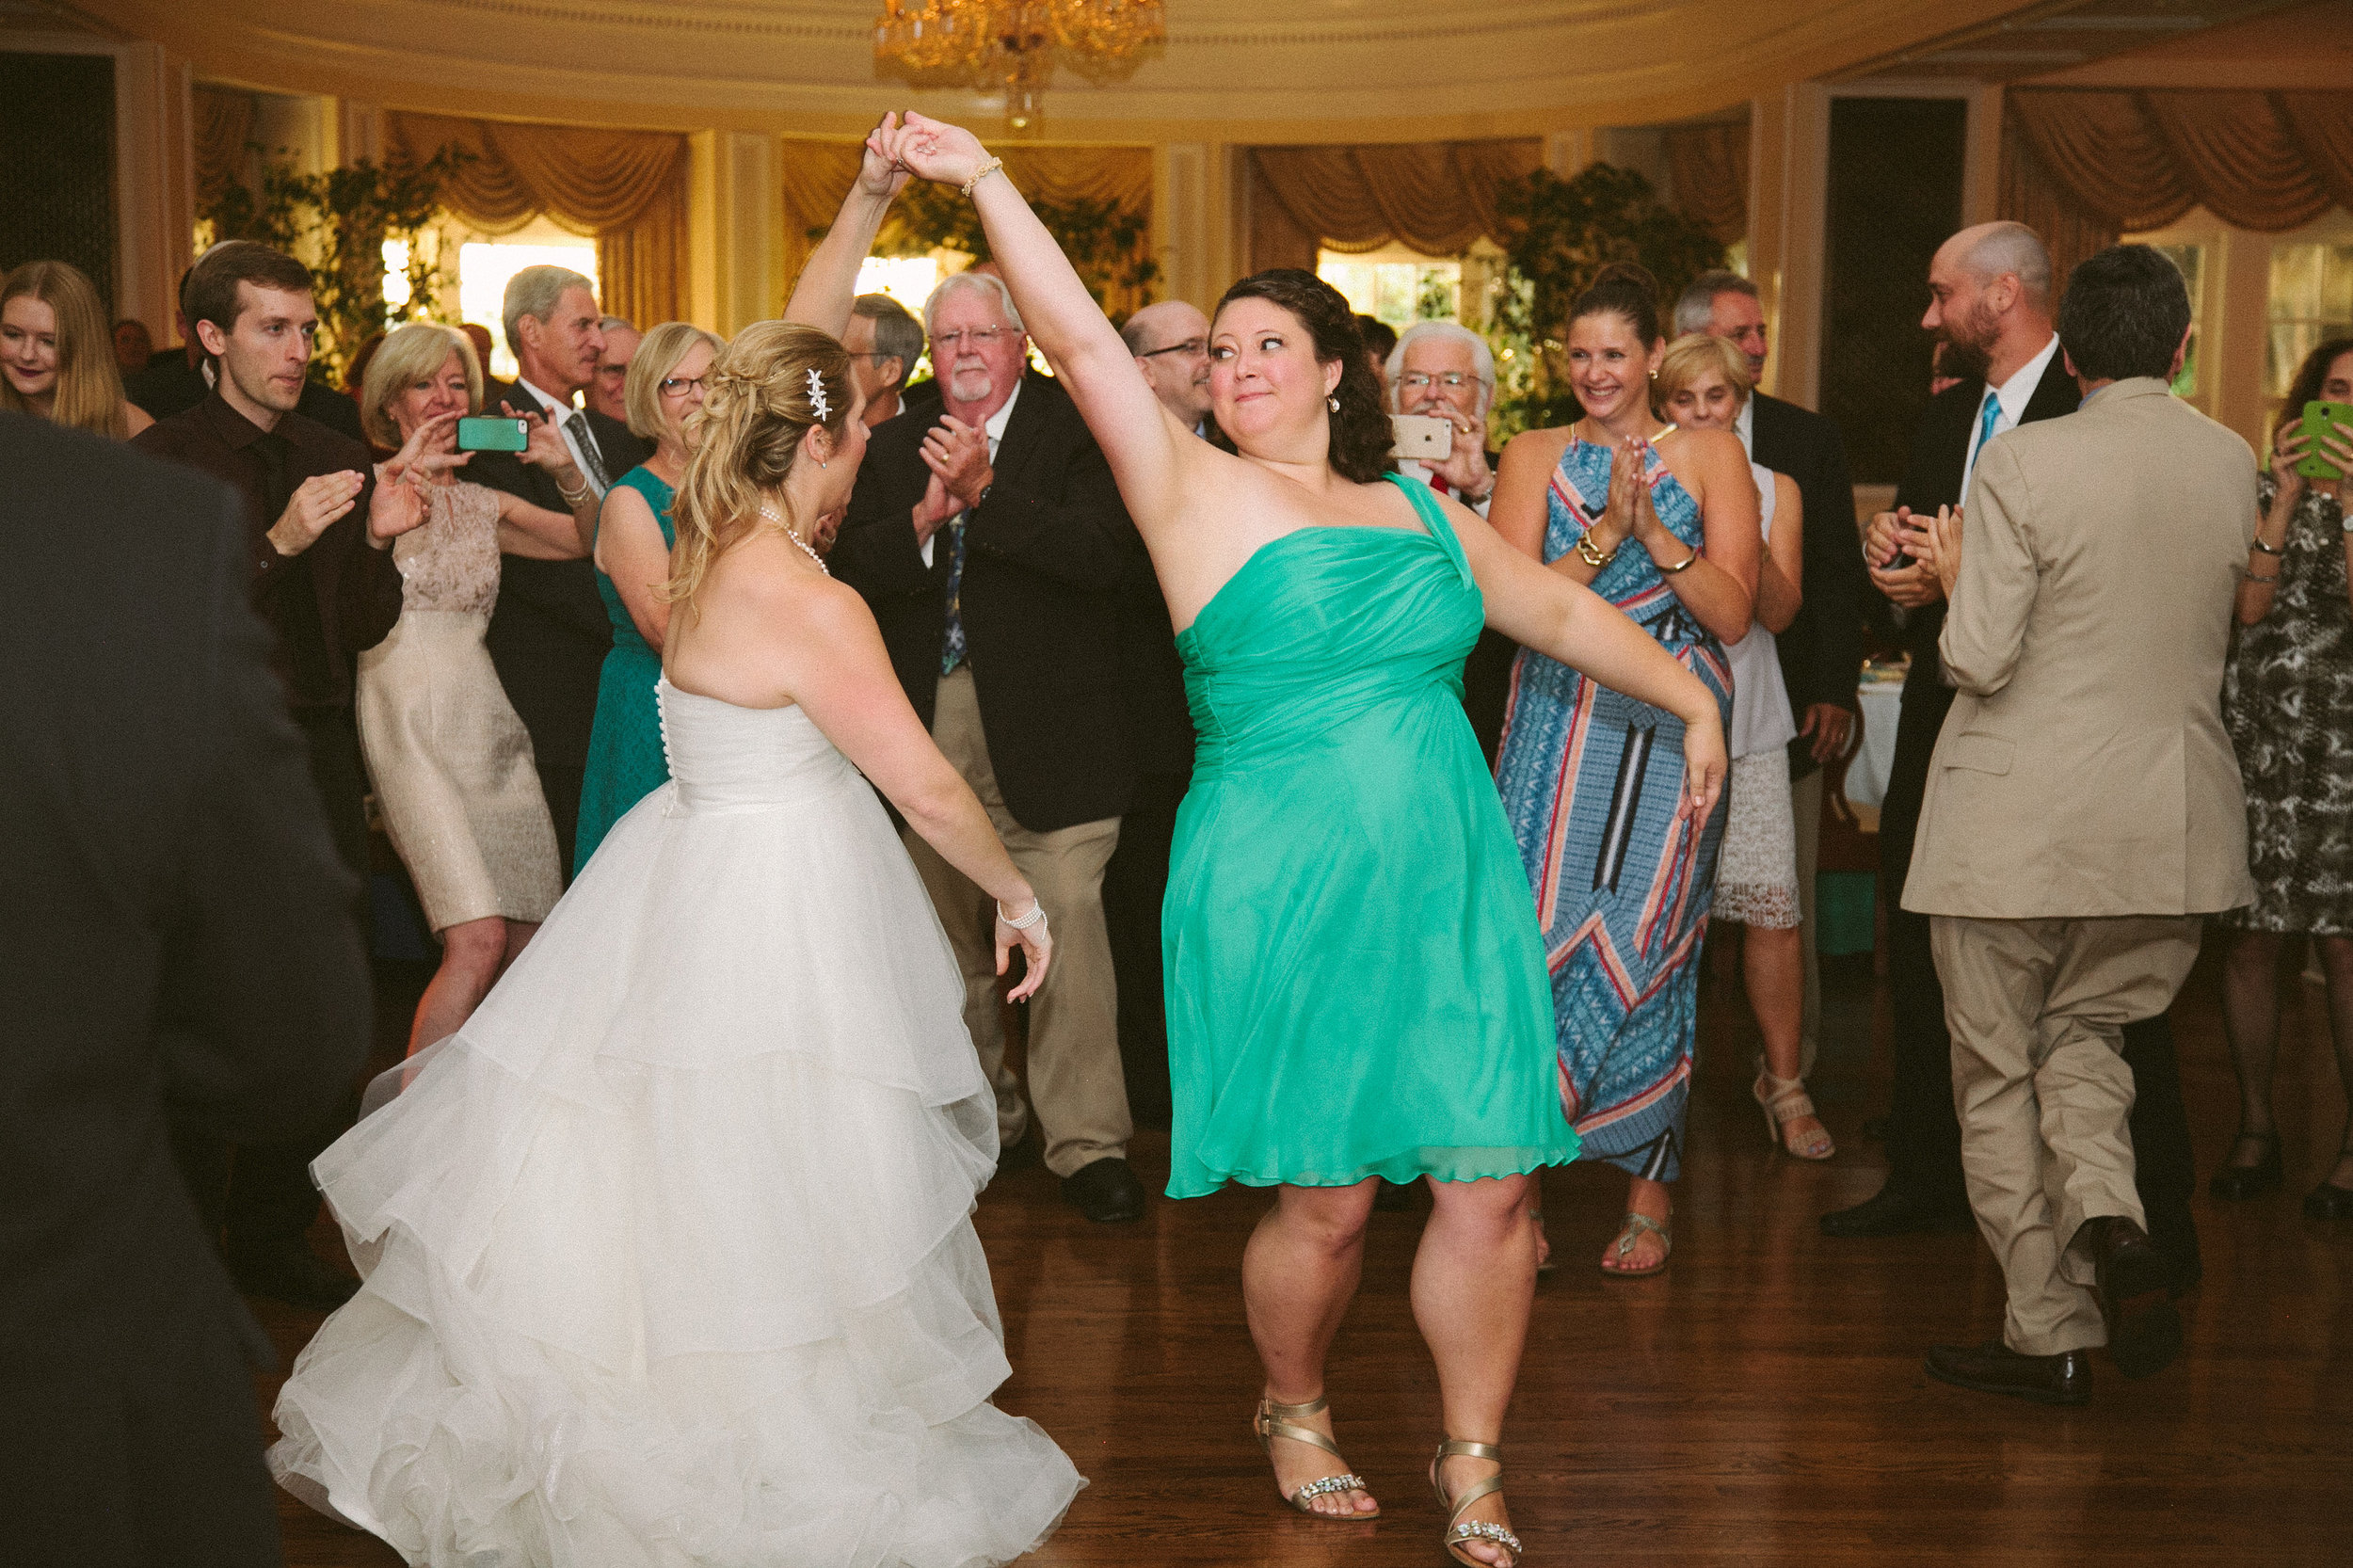 Vness-Photography-Chevy-Chase-Country-Club-A&R-Wedding-698.jpg